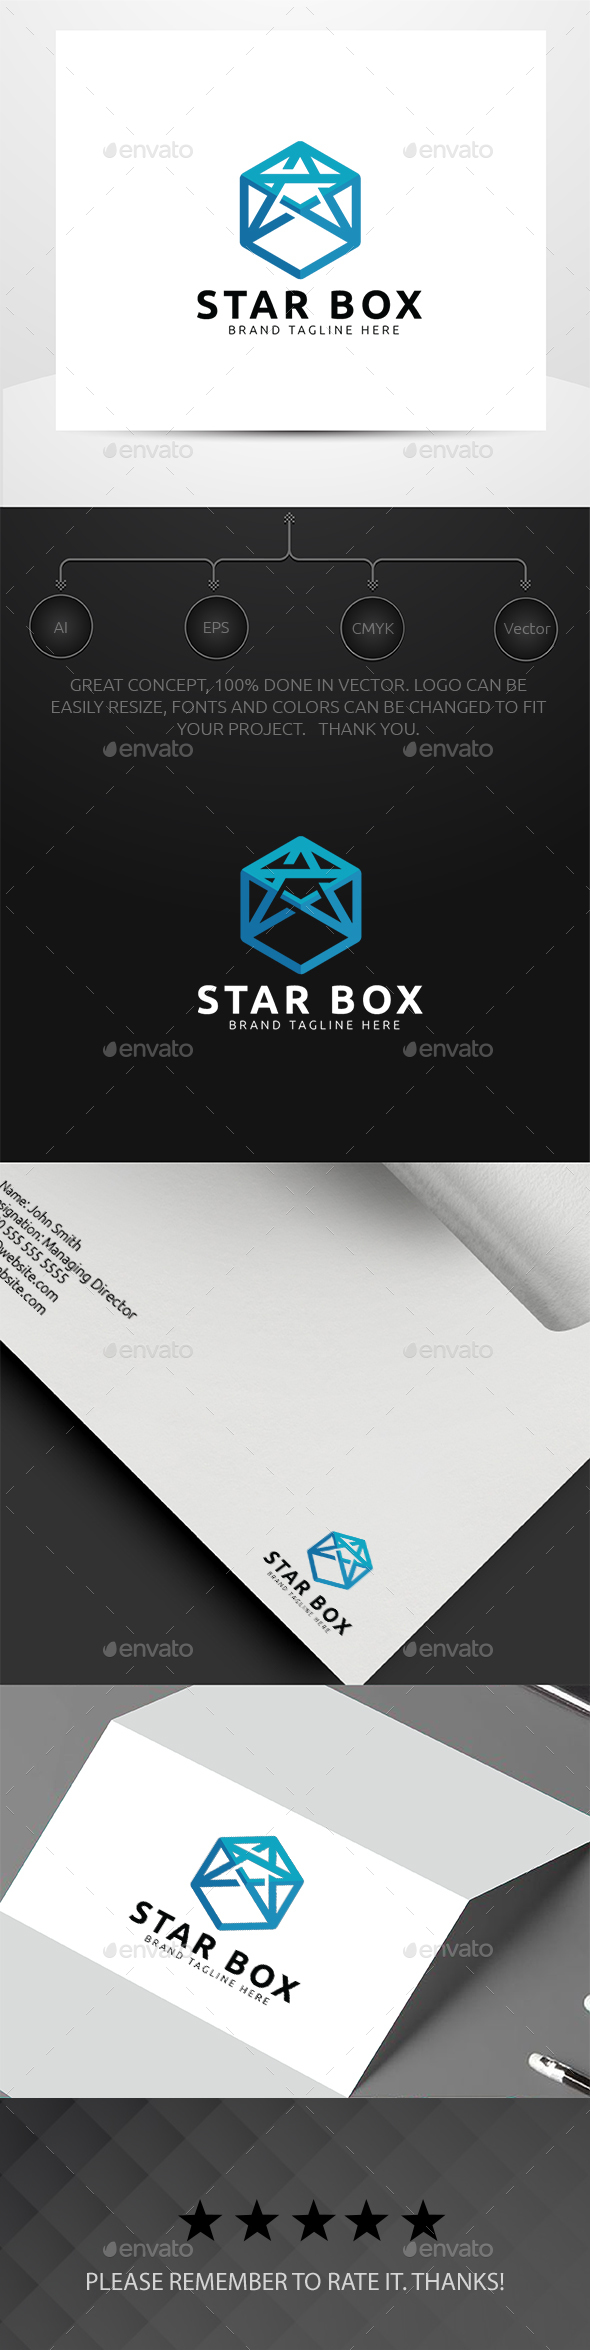 Star Box - Symbols Logo Templates